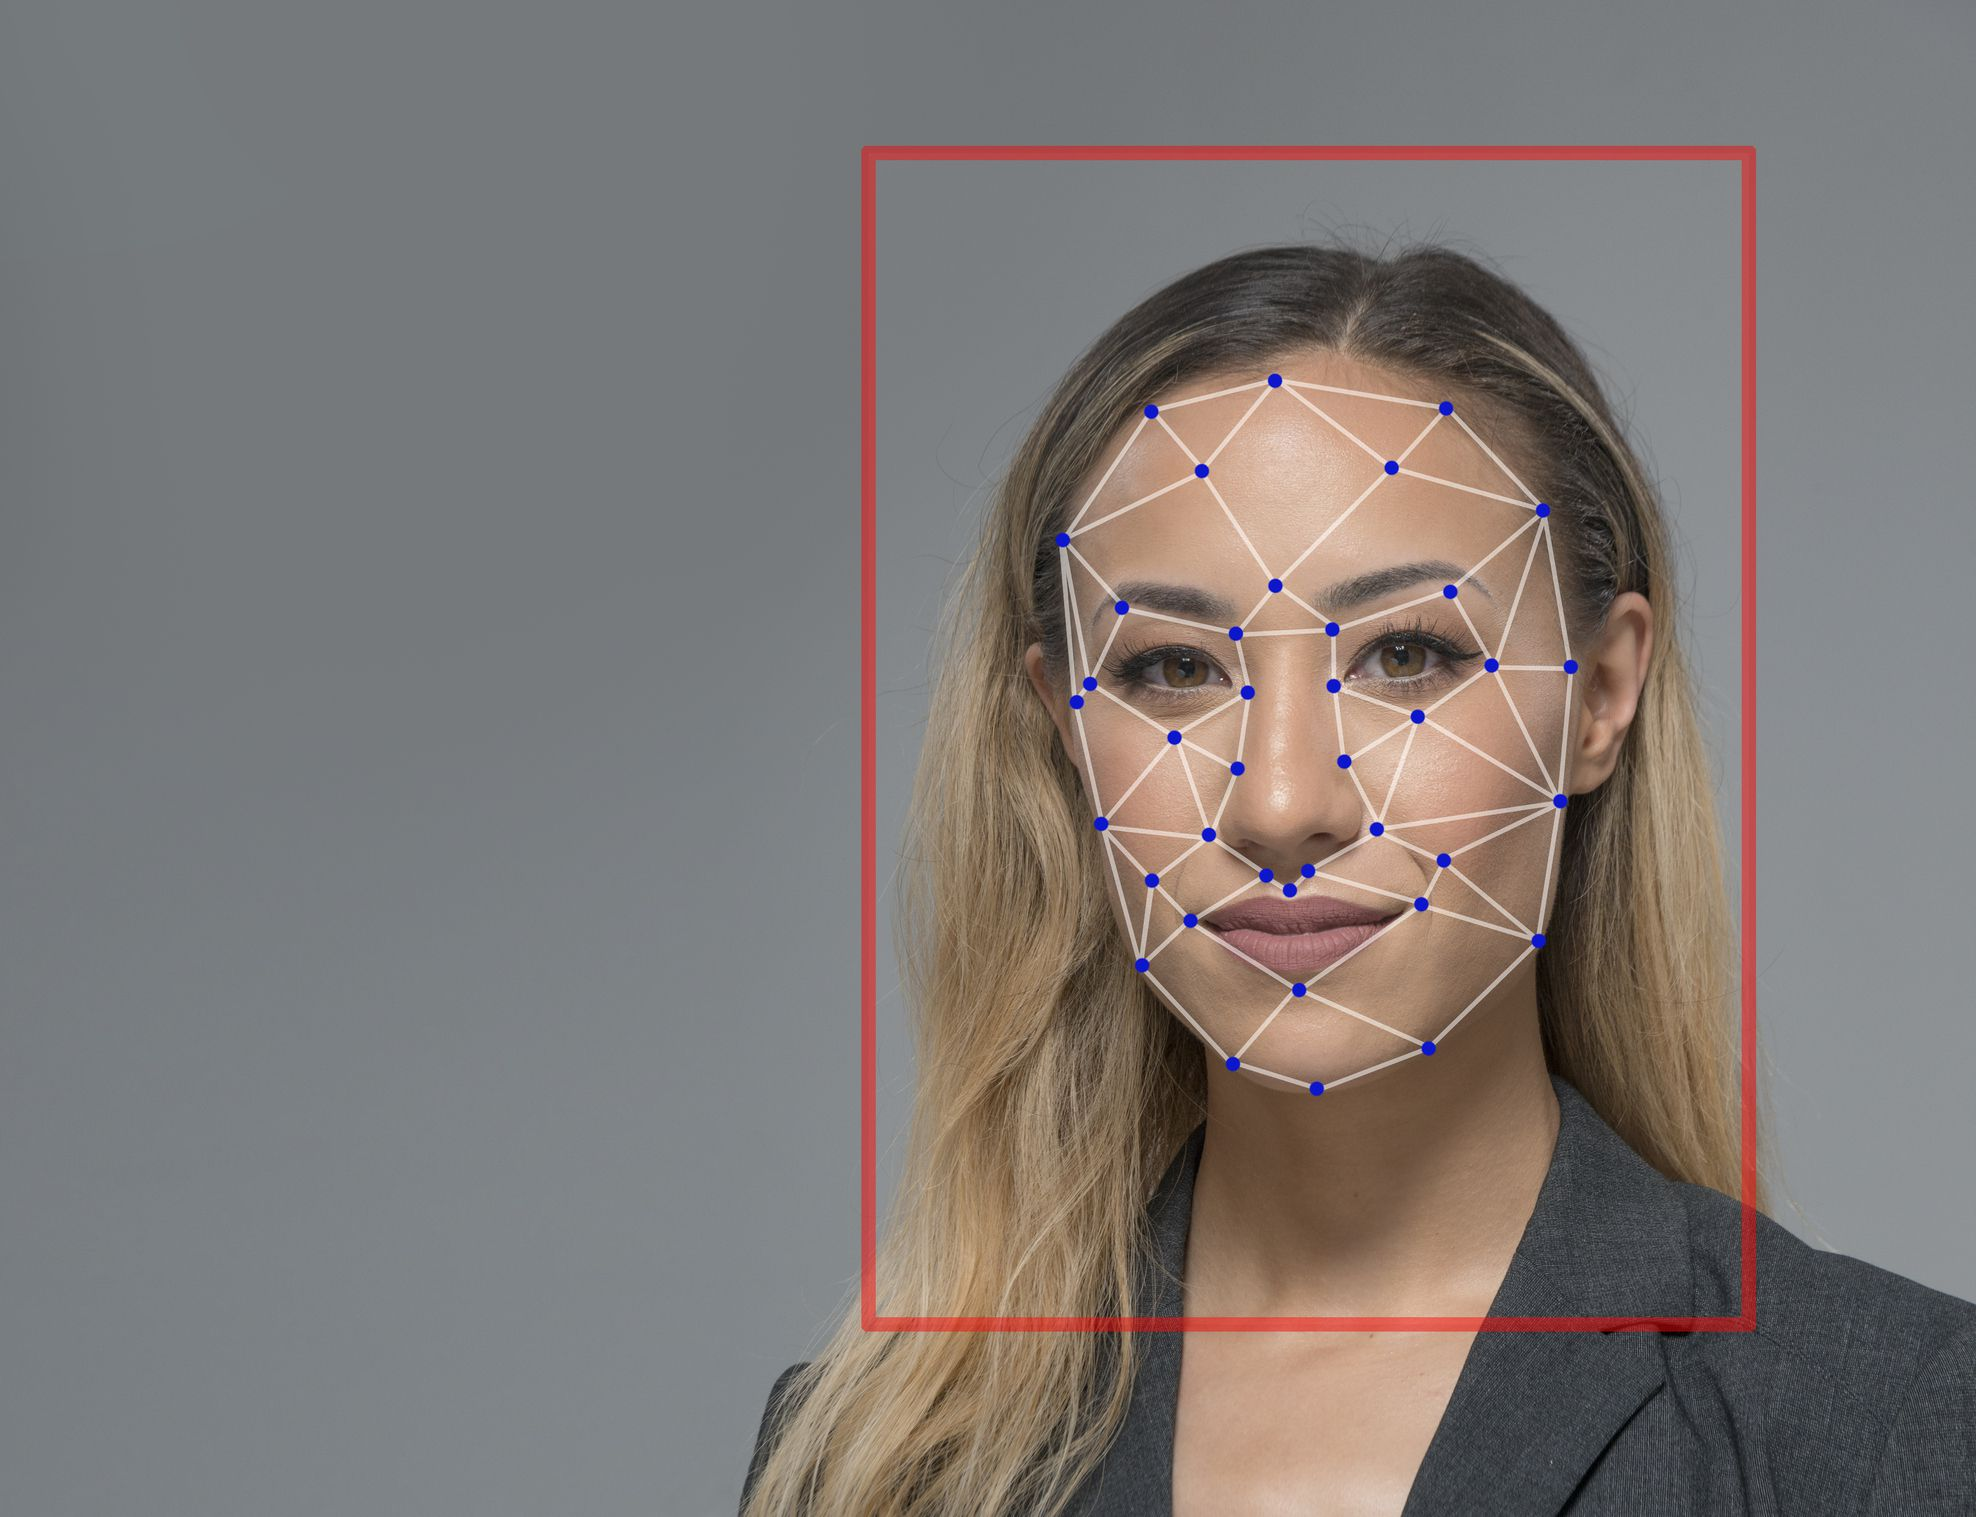 facial recognition technology and how its used and abused today The technology enabling a full techno-police state was on hand, giving a glimpse into how new advances in things like artificial intelligence and facial recognition can be used to track citizens.